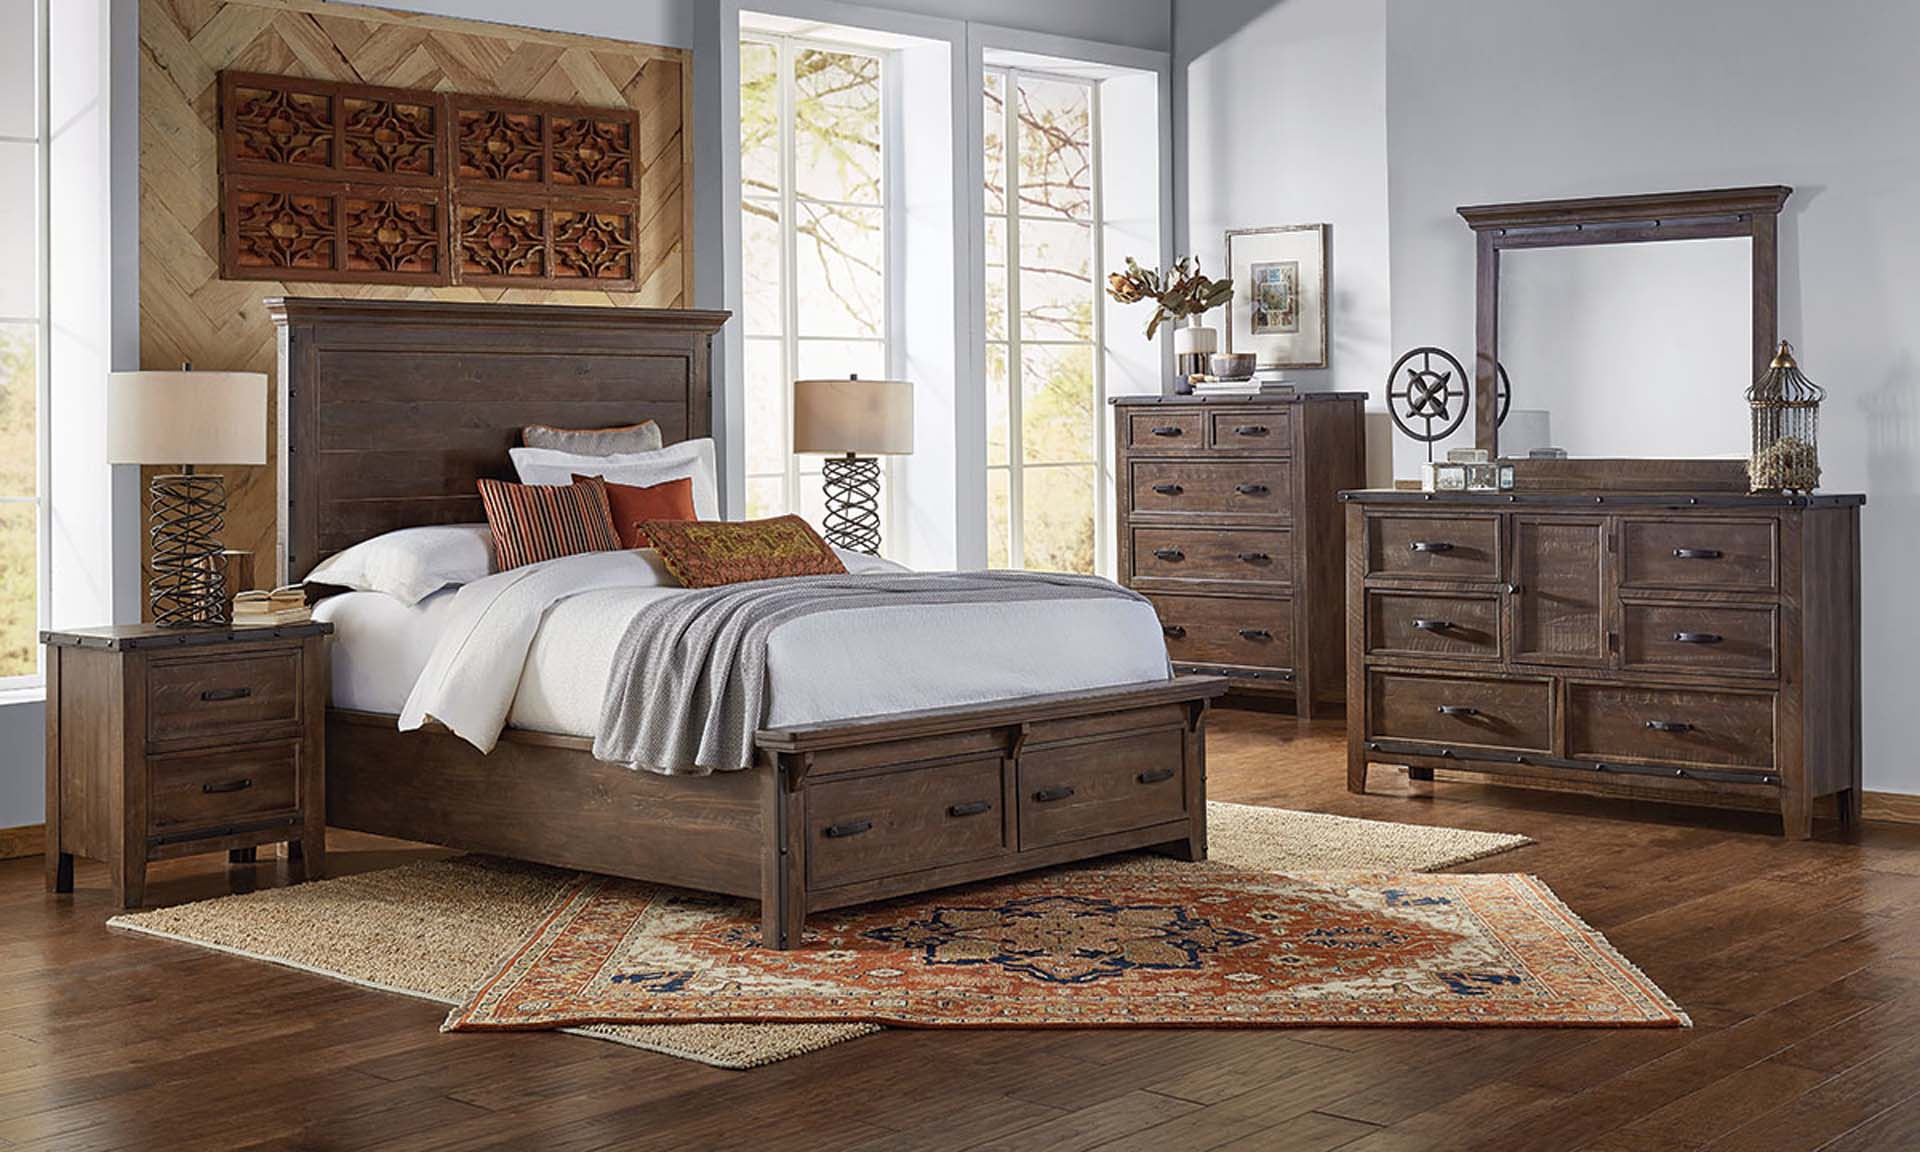 A America Furniture >> A America Marquez Rustic Solid Pine King Storage Bedroom